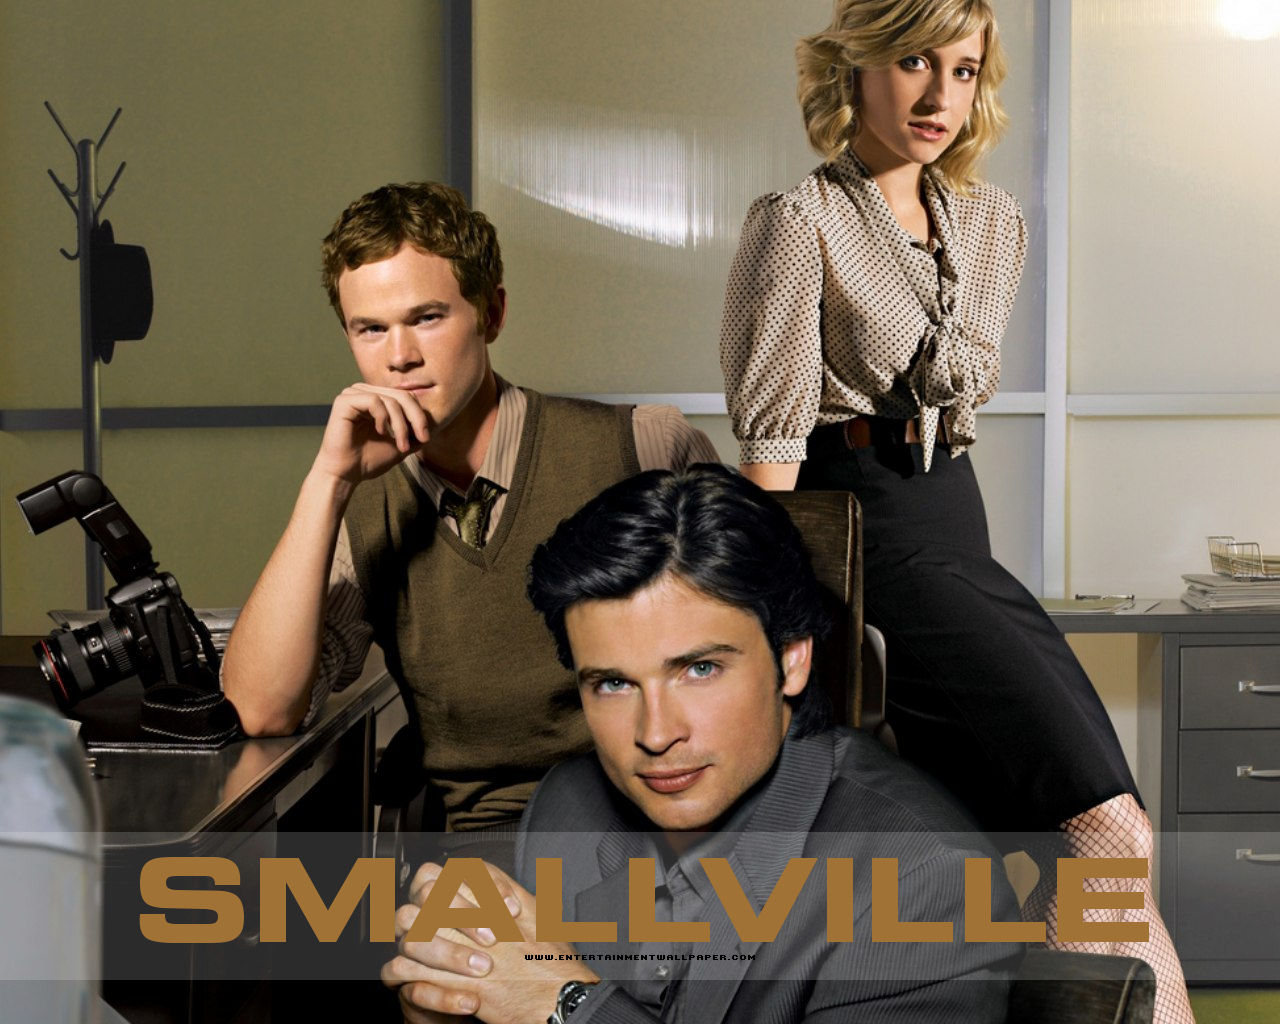 http://2.bp.blogspot.com/-z5Kv9ctyfVA/Tc7AJH1CwPI/AAAAAAAAACo/NQMjMOme1yE/s1600/1249022207_1280x1024_smallville-wallpapers-for-pc.jpg